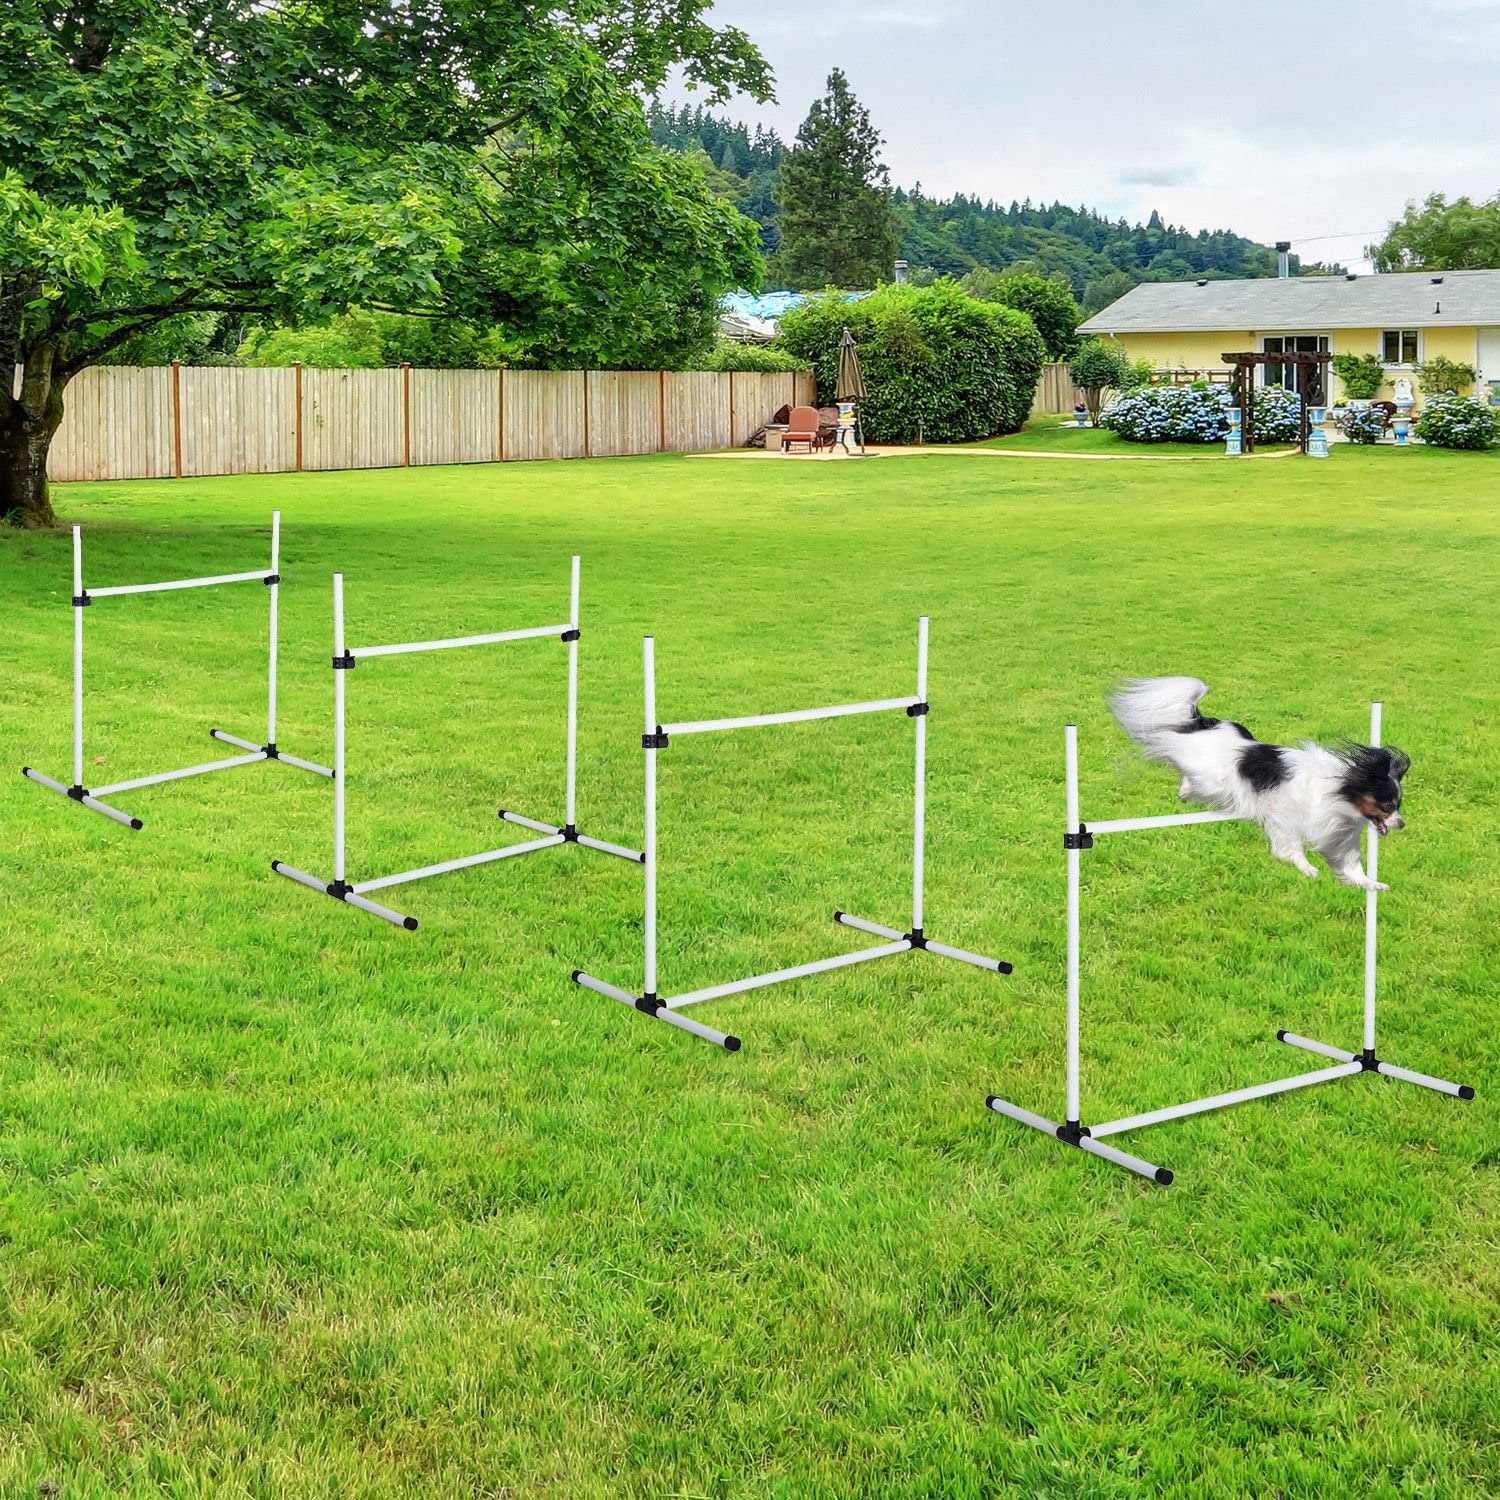 GraceShop White Pet Dog Agility Manufacturer direct delivery Outd Jump Limited time trial price Training Equipment Set